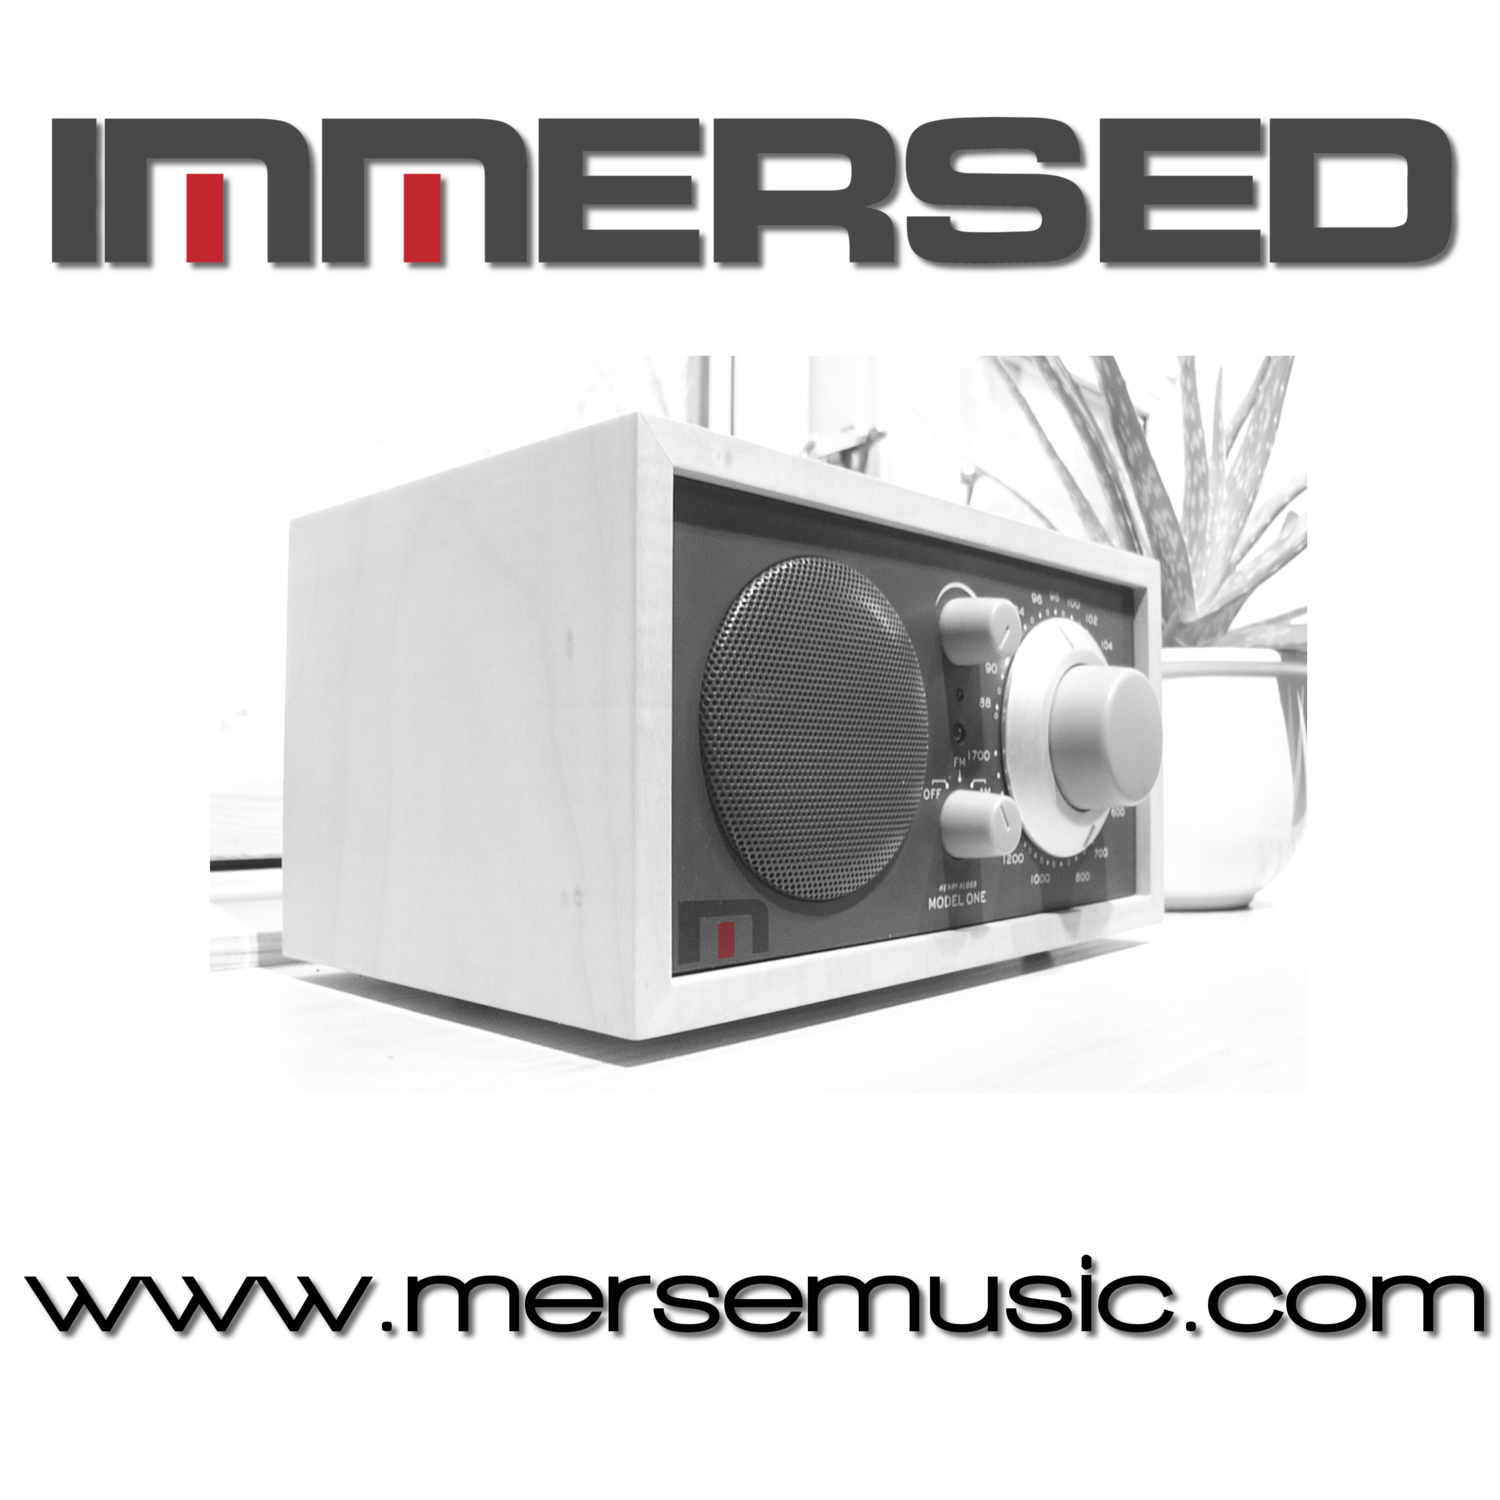 Immersed - Merse Music